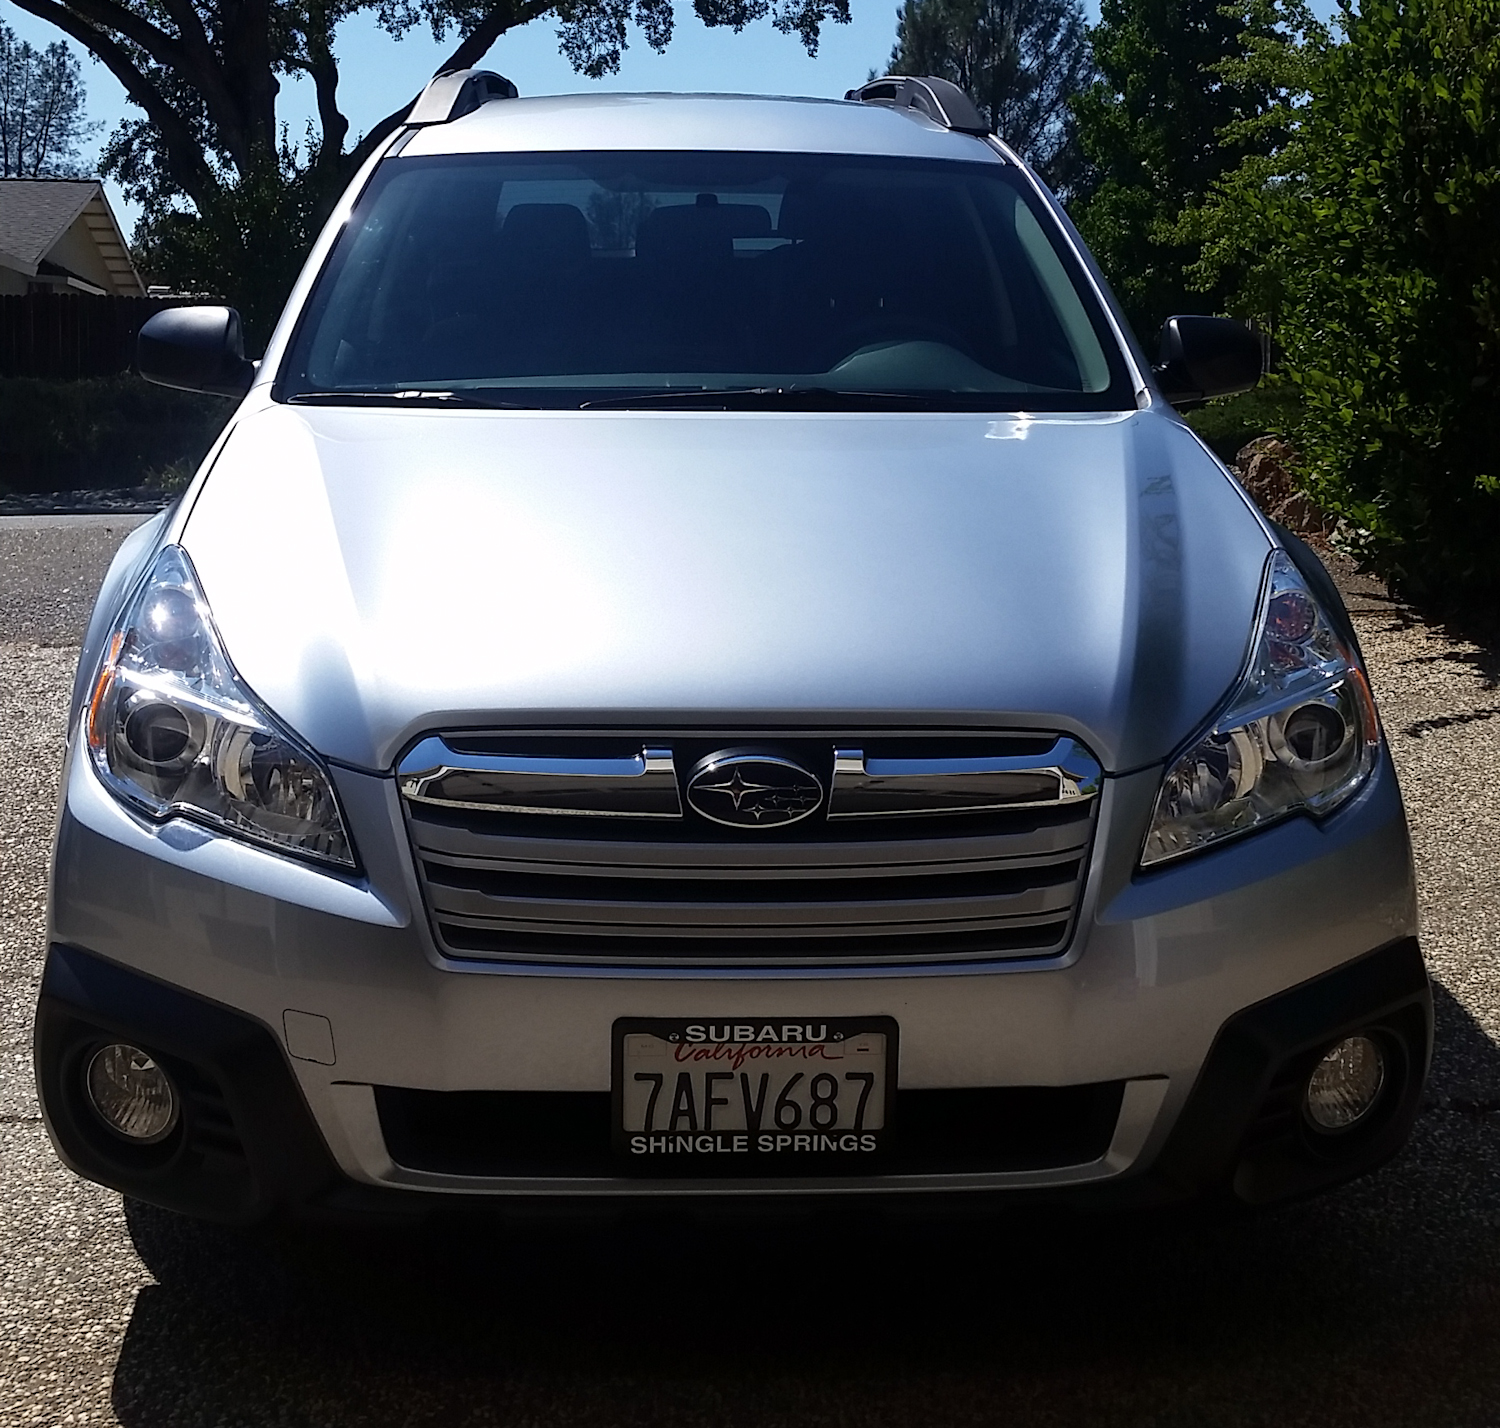 Subaru Outback 2.5i (2 of 4)